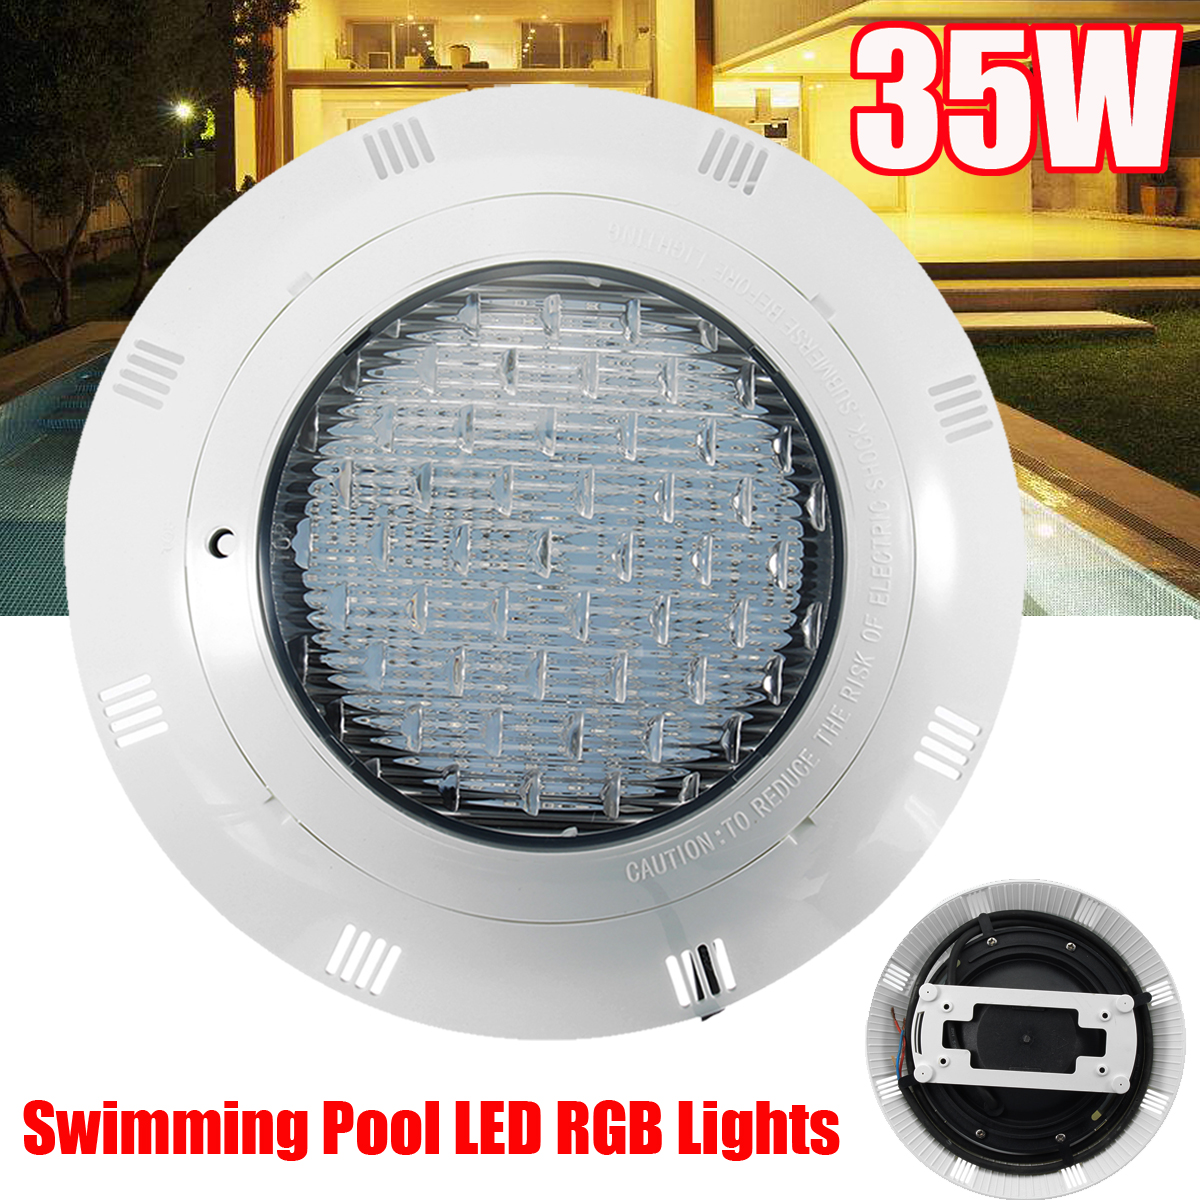 252 LED 35W 12V RGB Swimming Pool Underwater Light IP68 Wall Mounted Power LED Outdoor Underwater Lighting 7Color Remote Control underwater